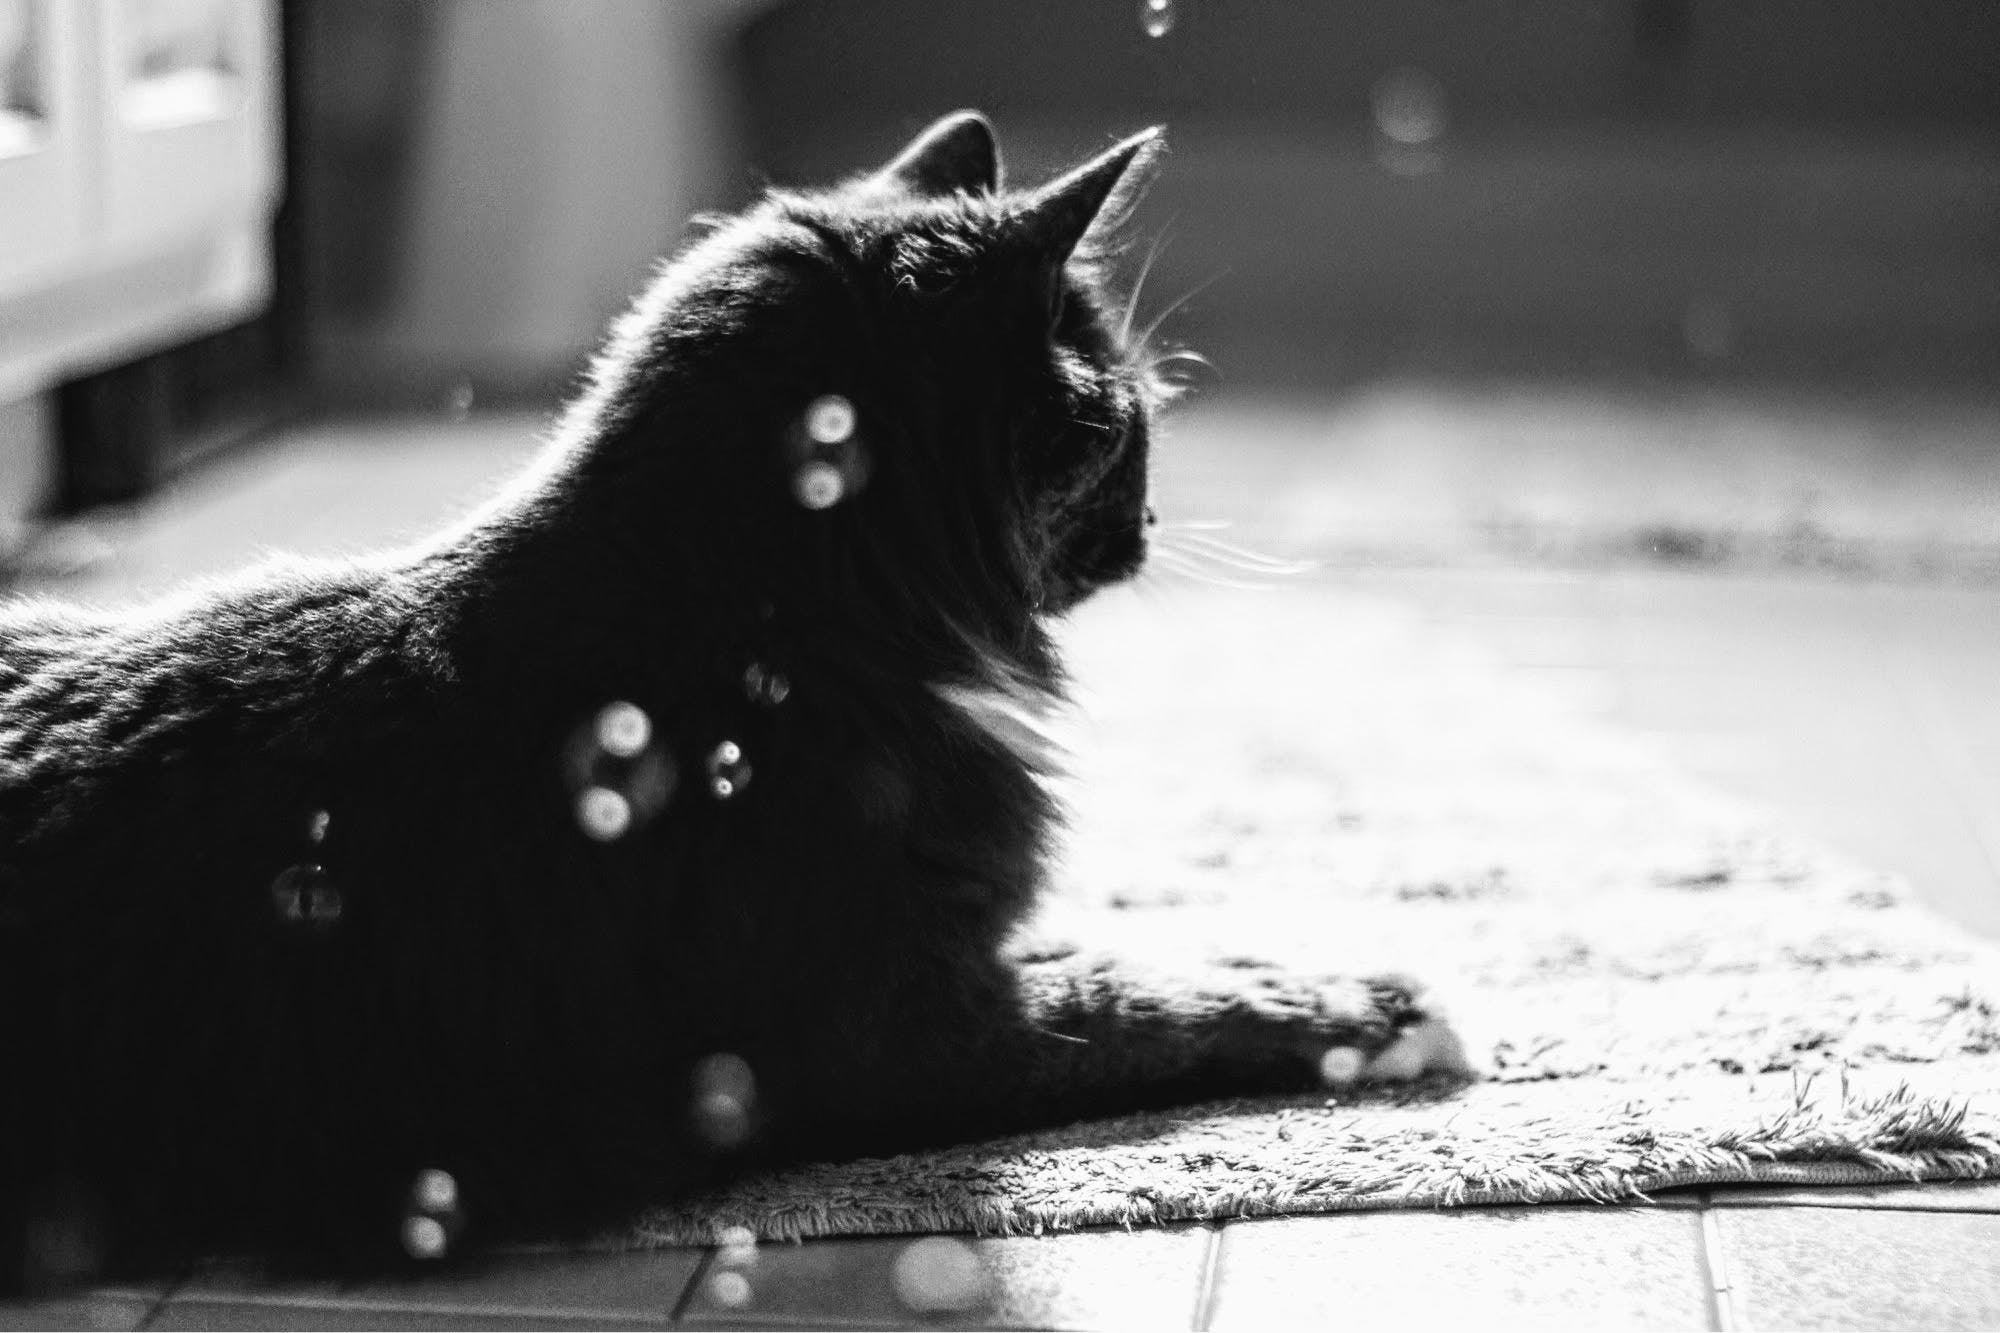 Grayscale Photo of Cat Resting on Rug